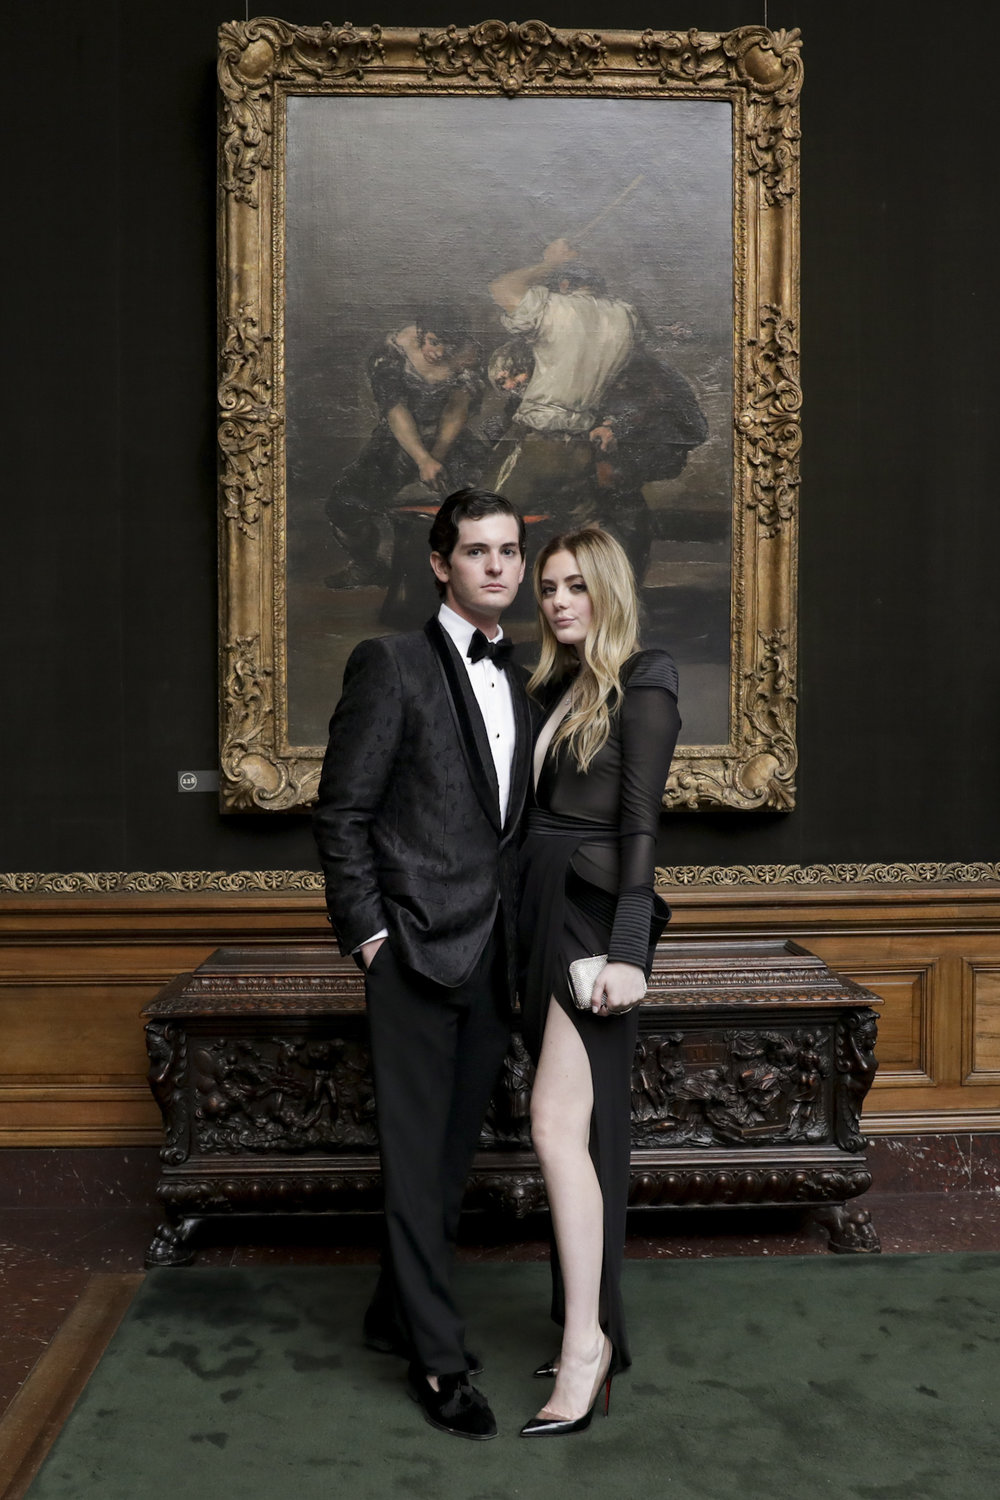 Steven Sachs and Erica Downs attend The Frick Collection's 20th Annual Young Fellows Ball at 1 East 70th Street on Thursday, March 21st, 2019. Photography, Courtesy of The Frick Collection.